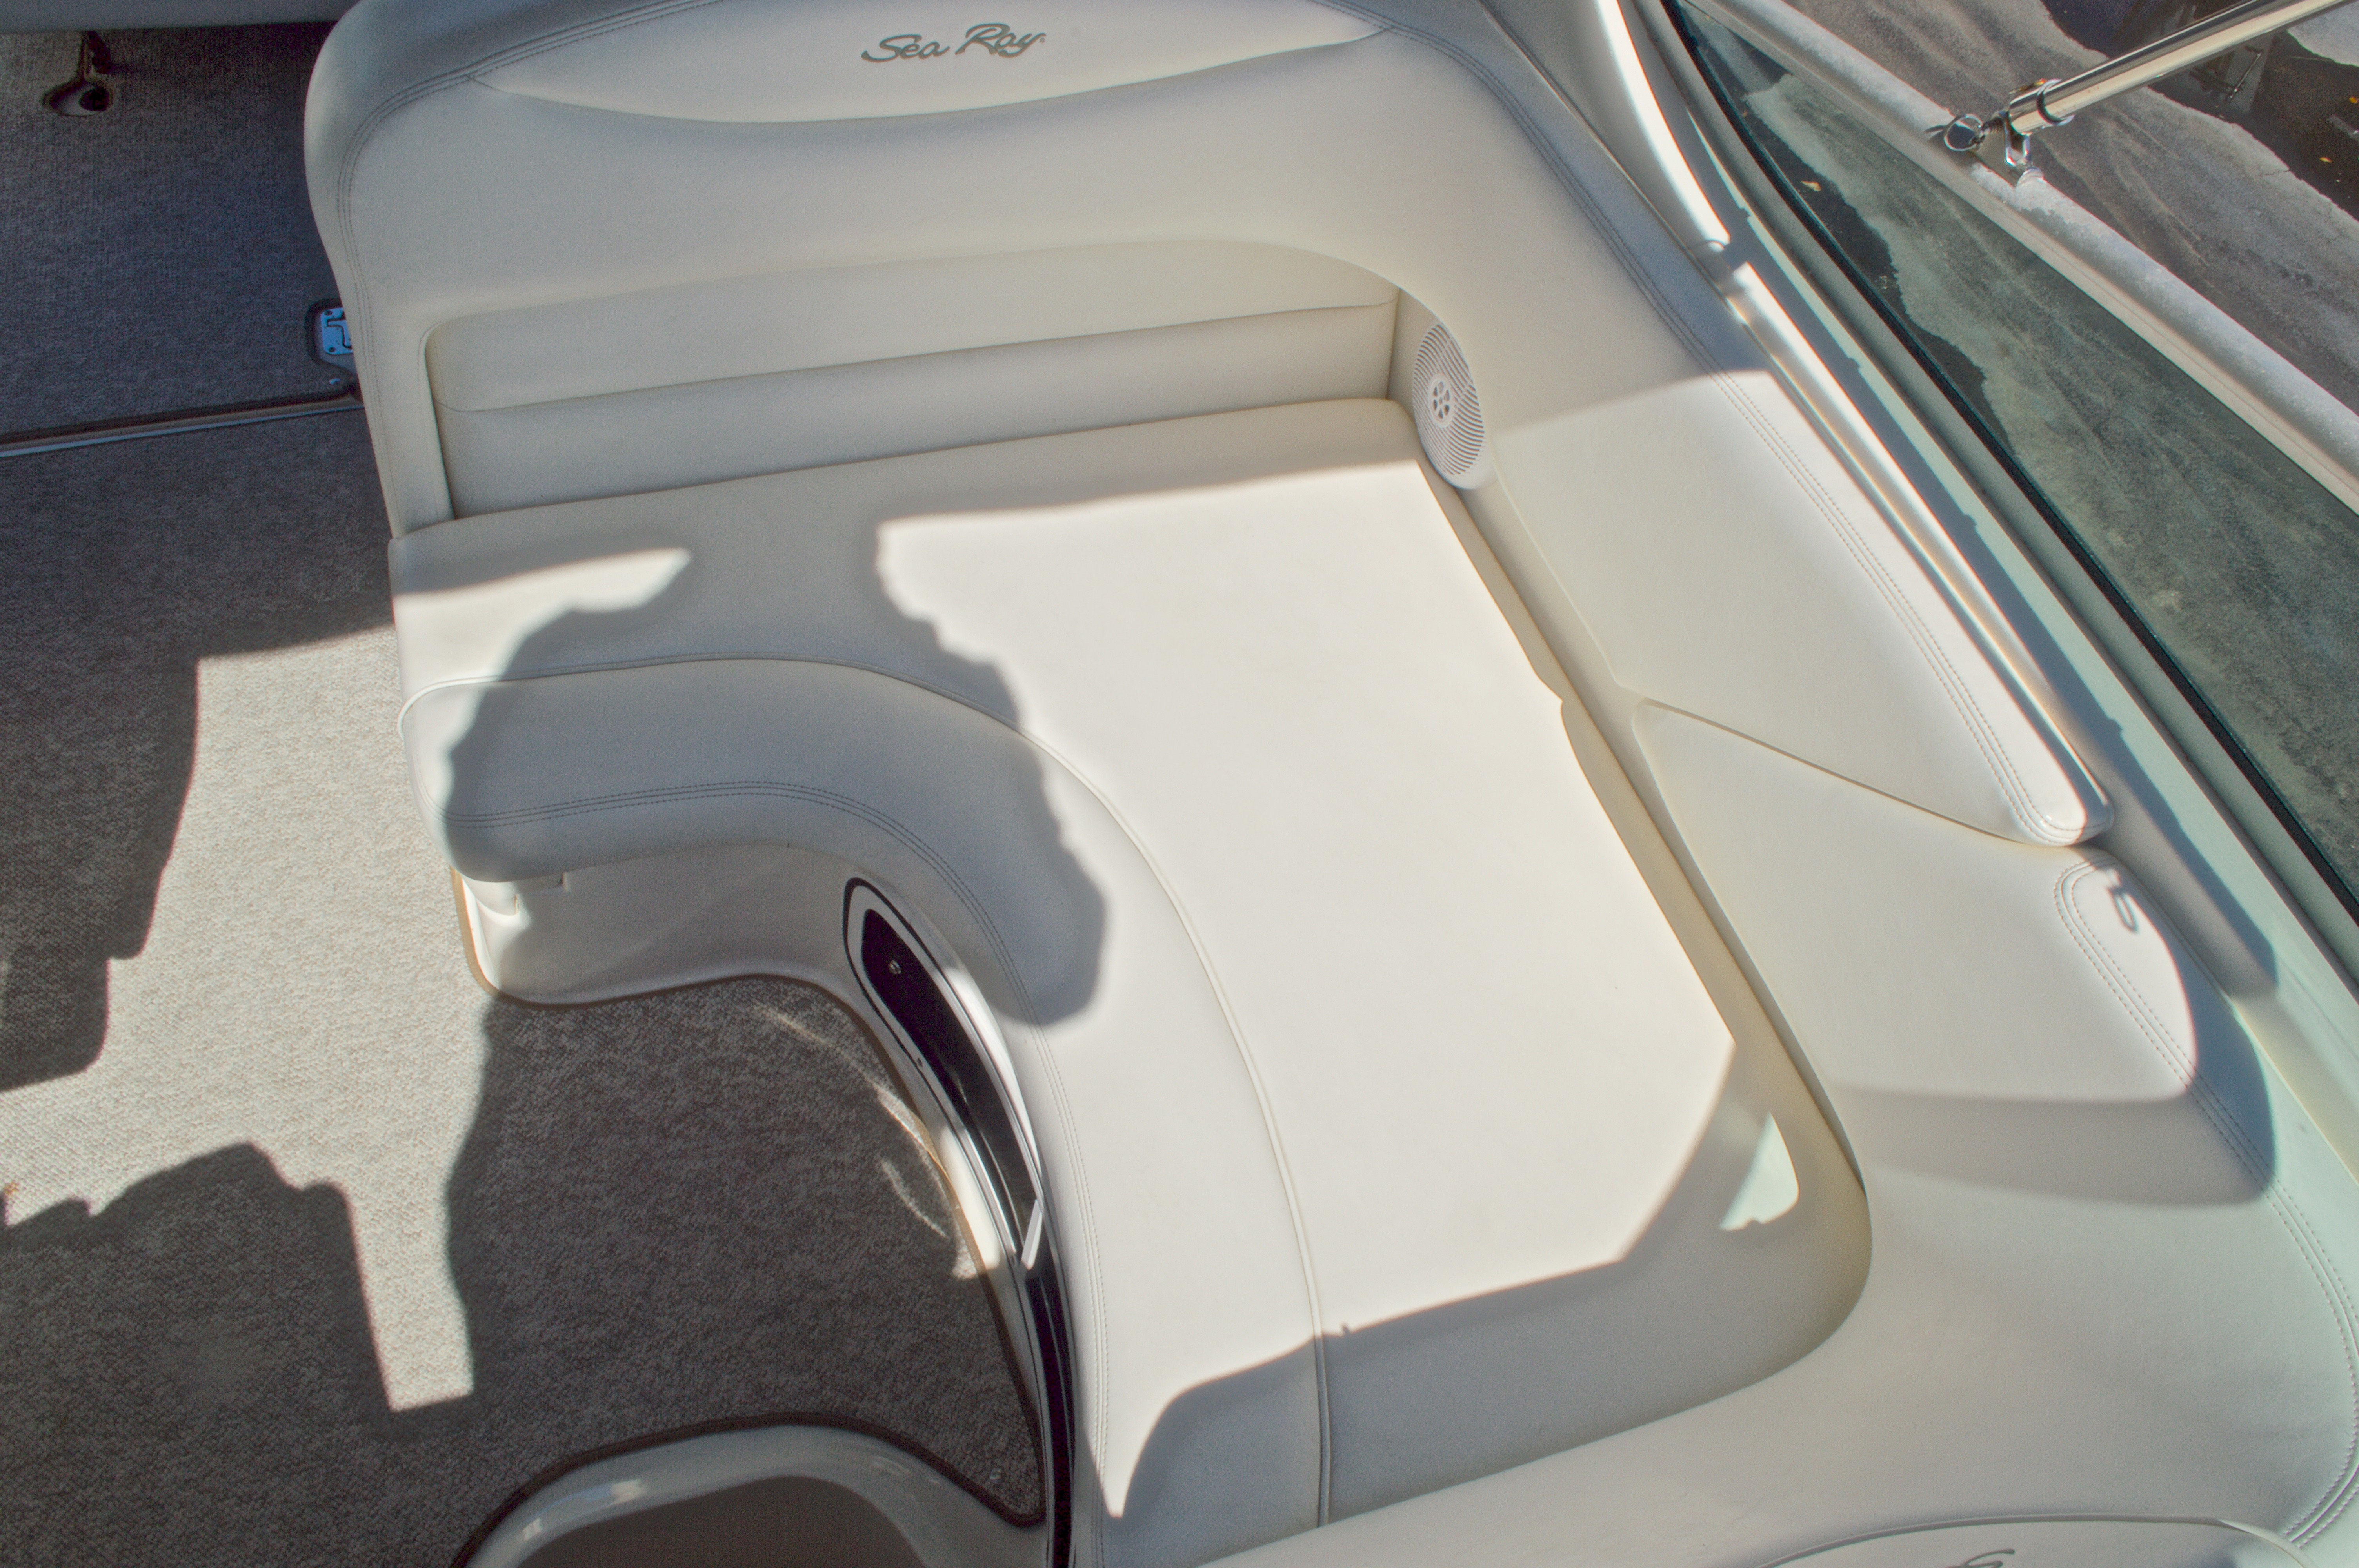 Thumbnail 28 for Used 2005 Sea Ray 280 Sundancer boat for sale in West Palm Beach, FL